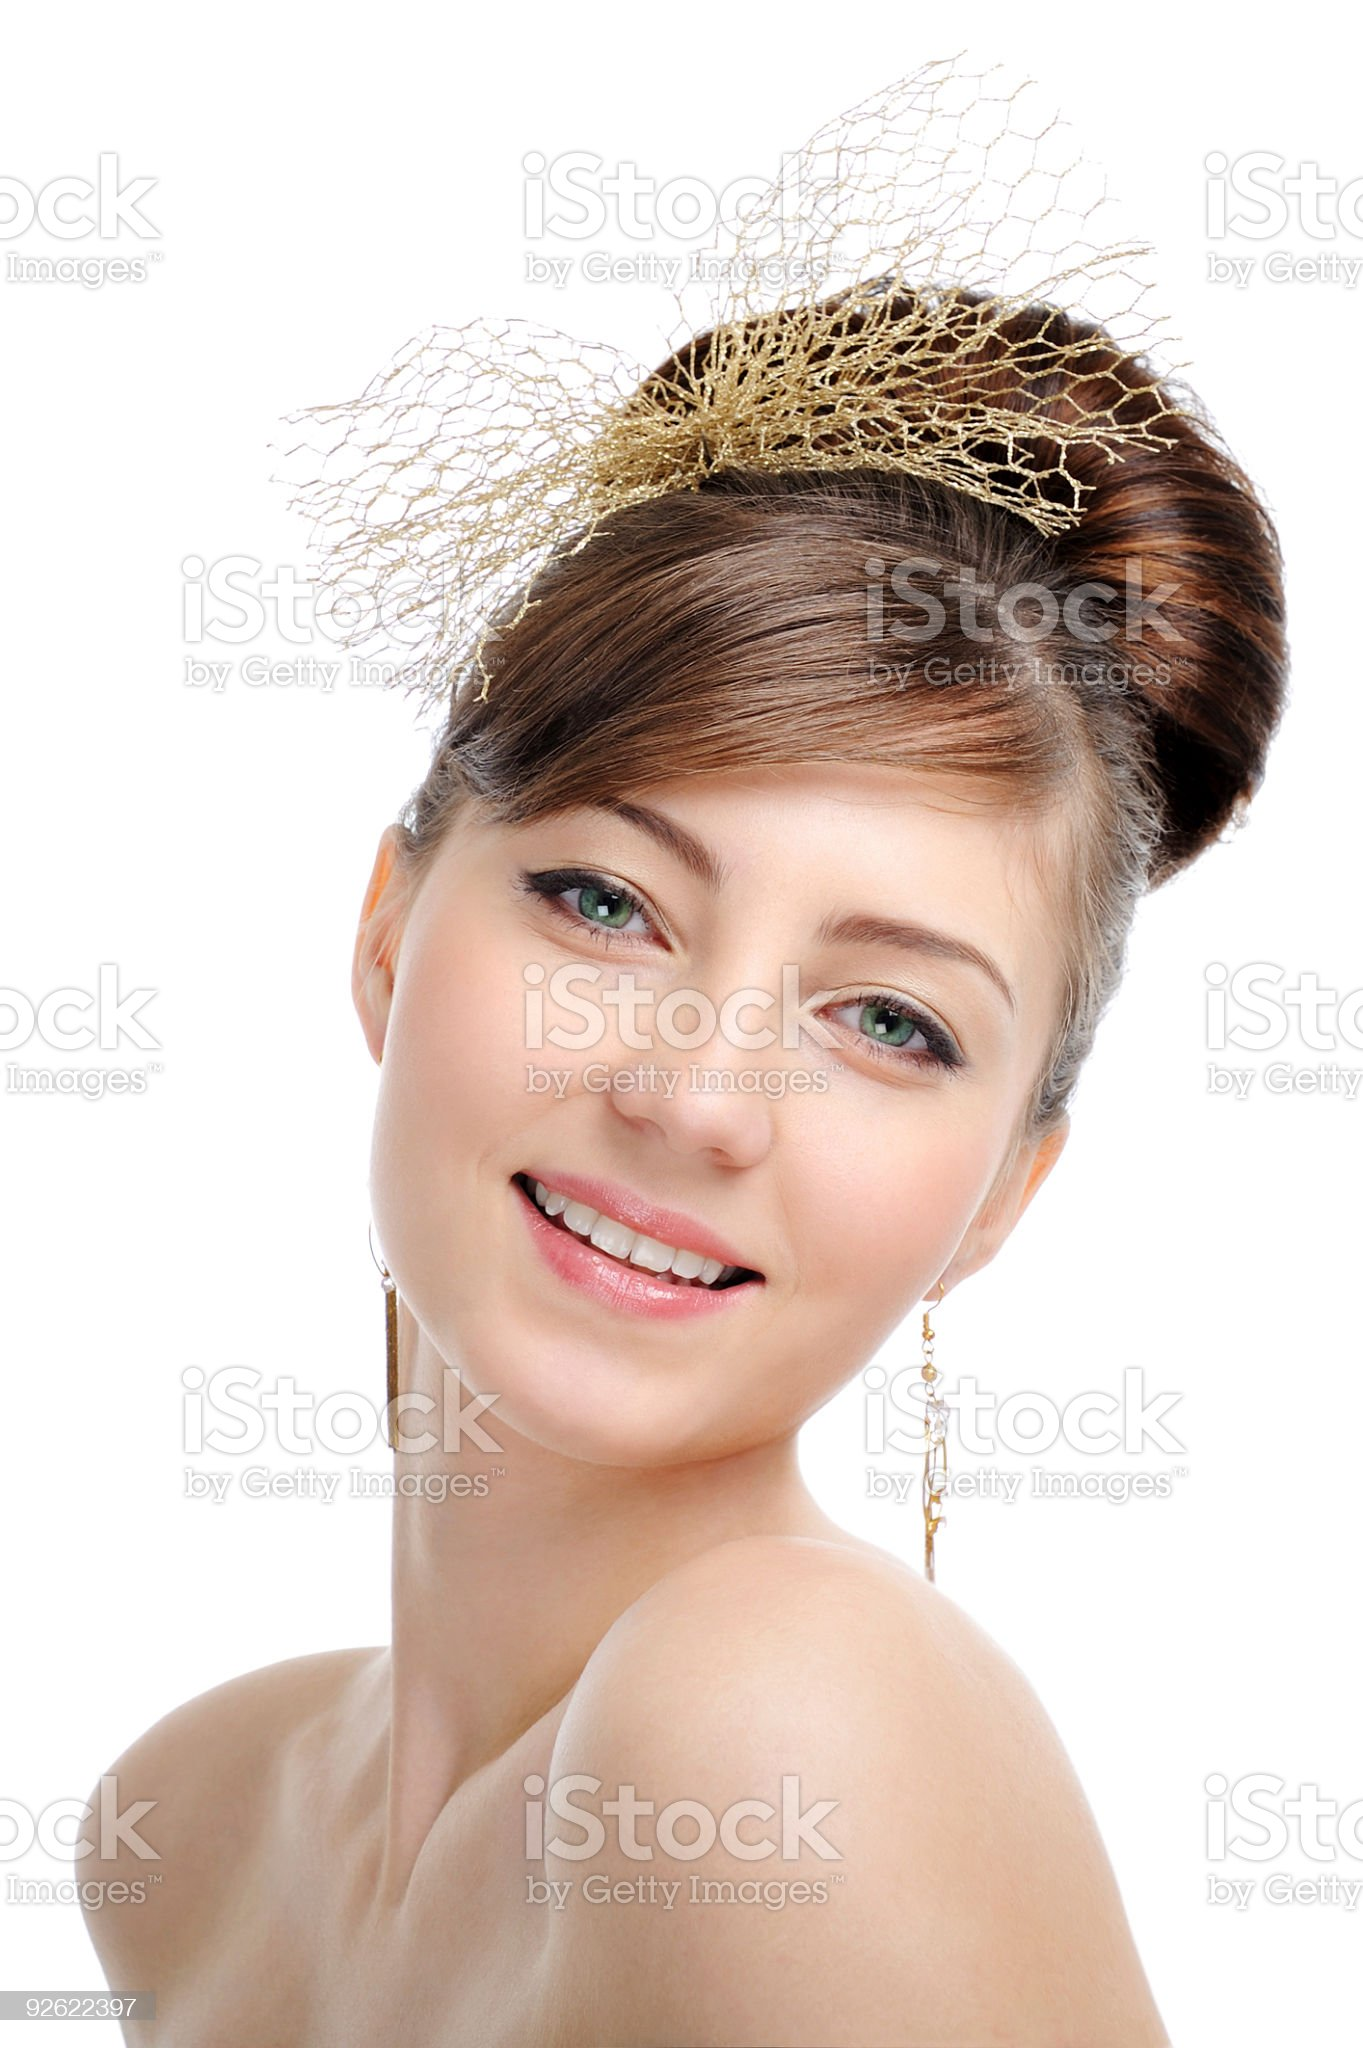 creative design hairstyle royalty-free stock photo